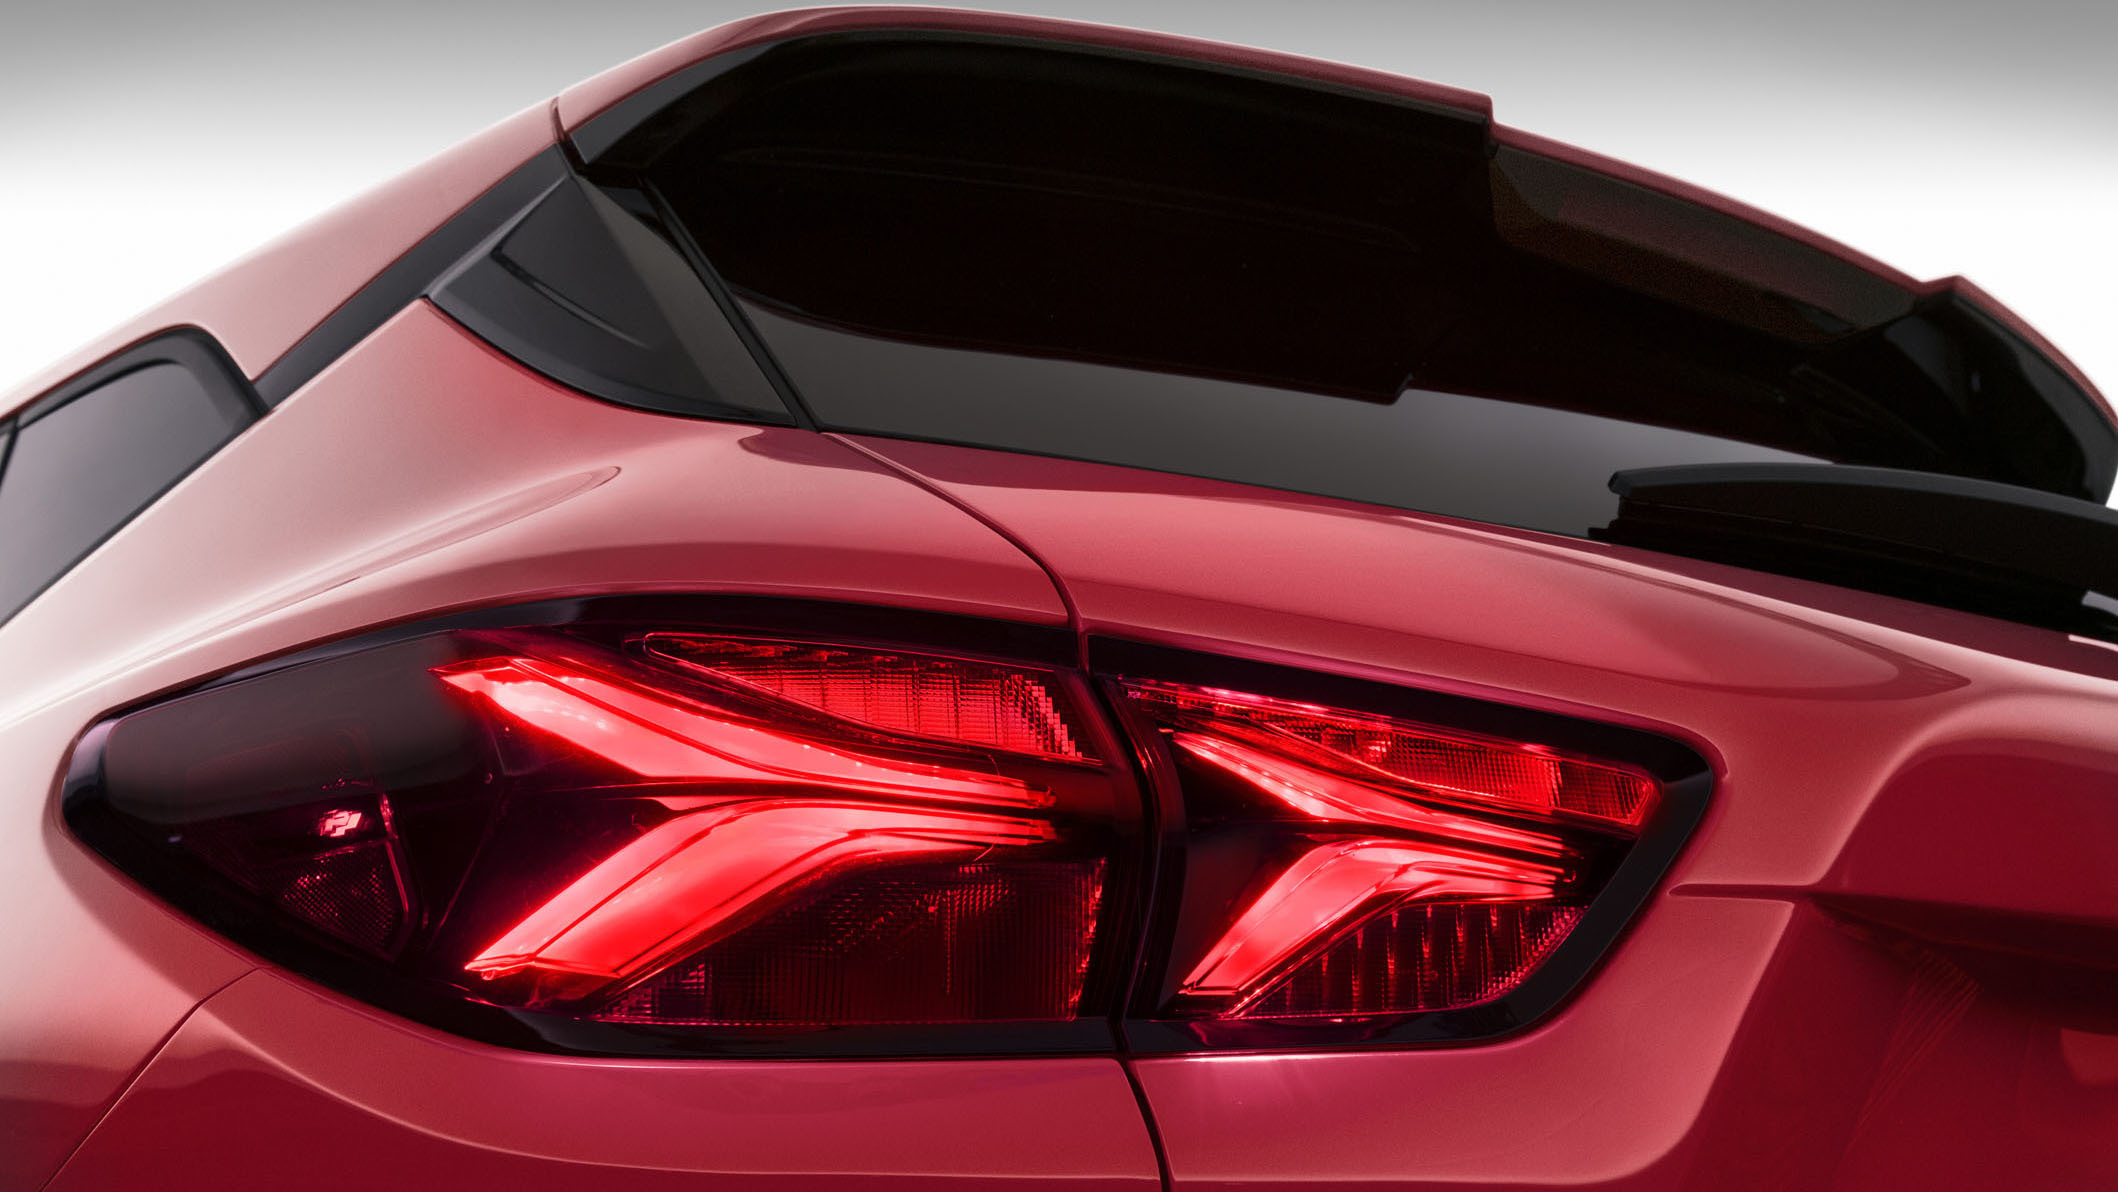 The 2019 Chevrolet Blazer features standard LED-illuminated Chevy signature dual-element taillamps.